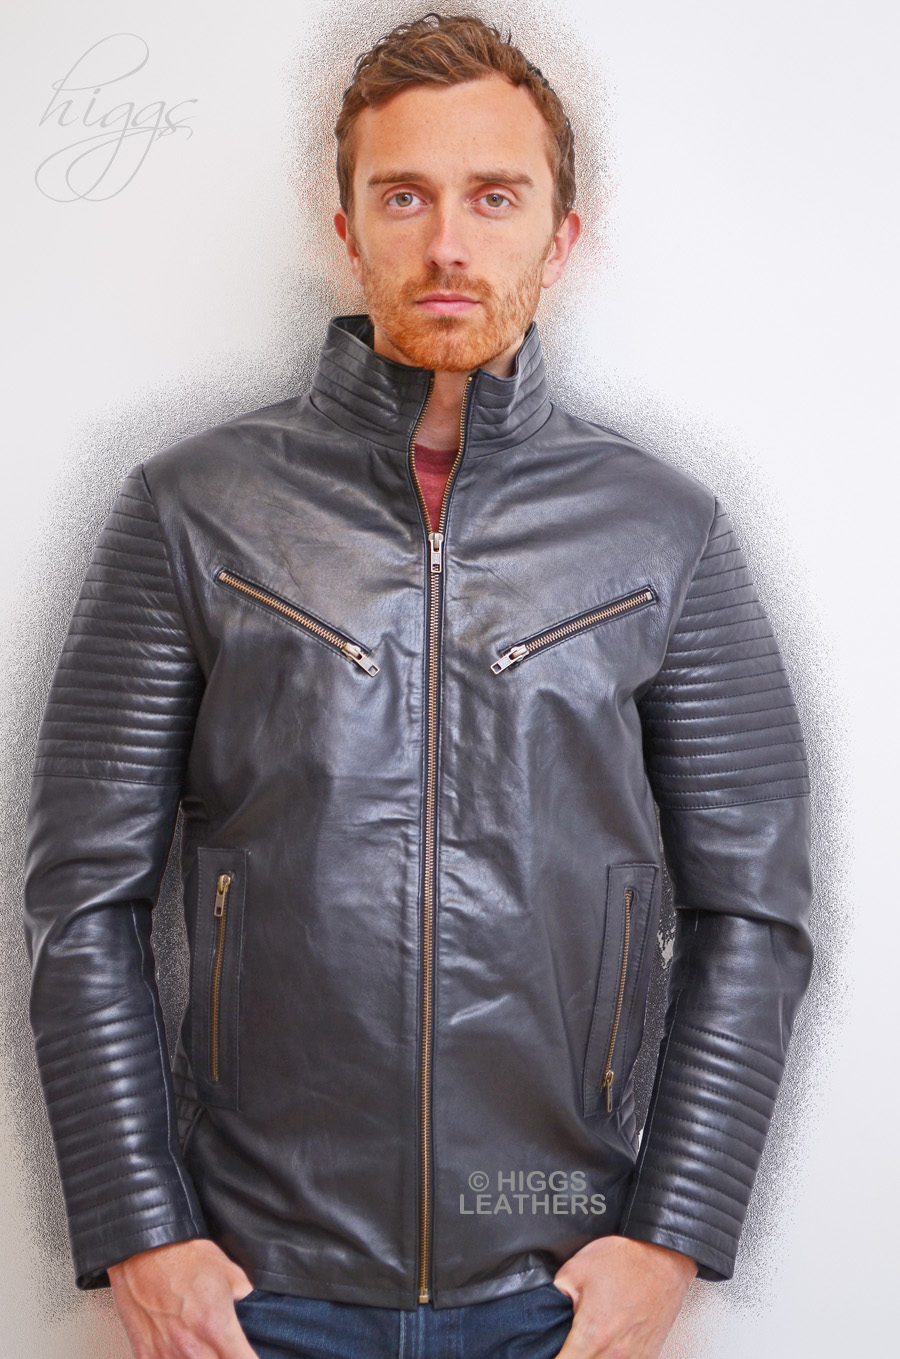 Higgs Leathers {NEW!}  Paddy (men's Black Leather Biker jackets) LIMITED OFFER - WHILE STOCKS LAST!